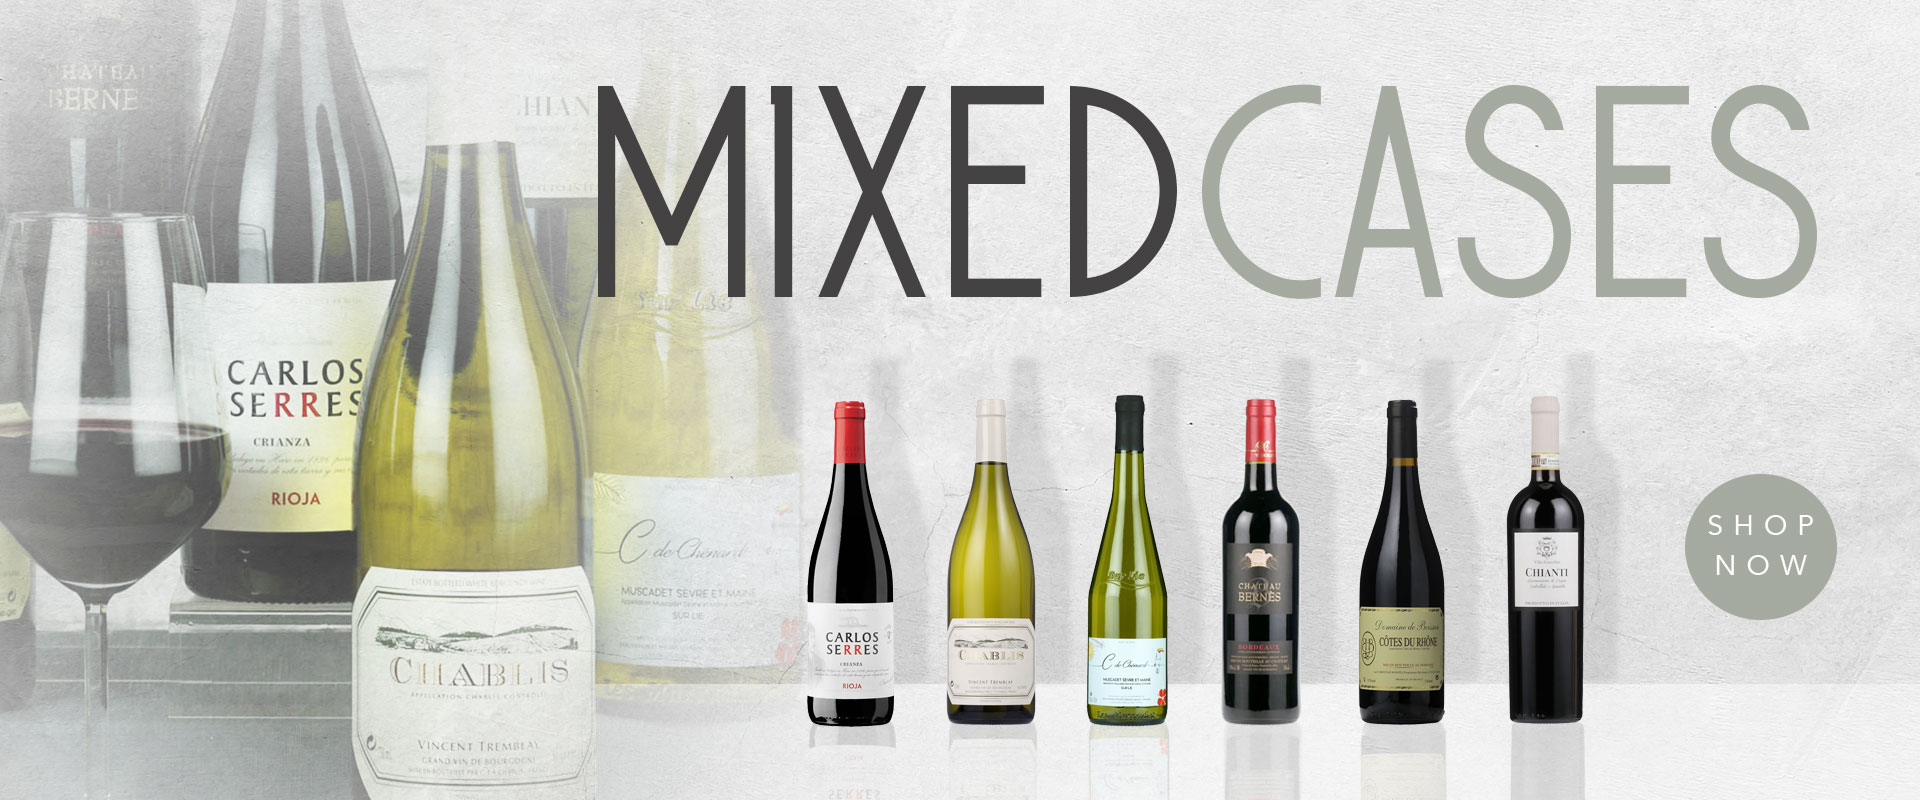 Mixed cases of wine